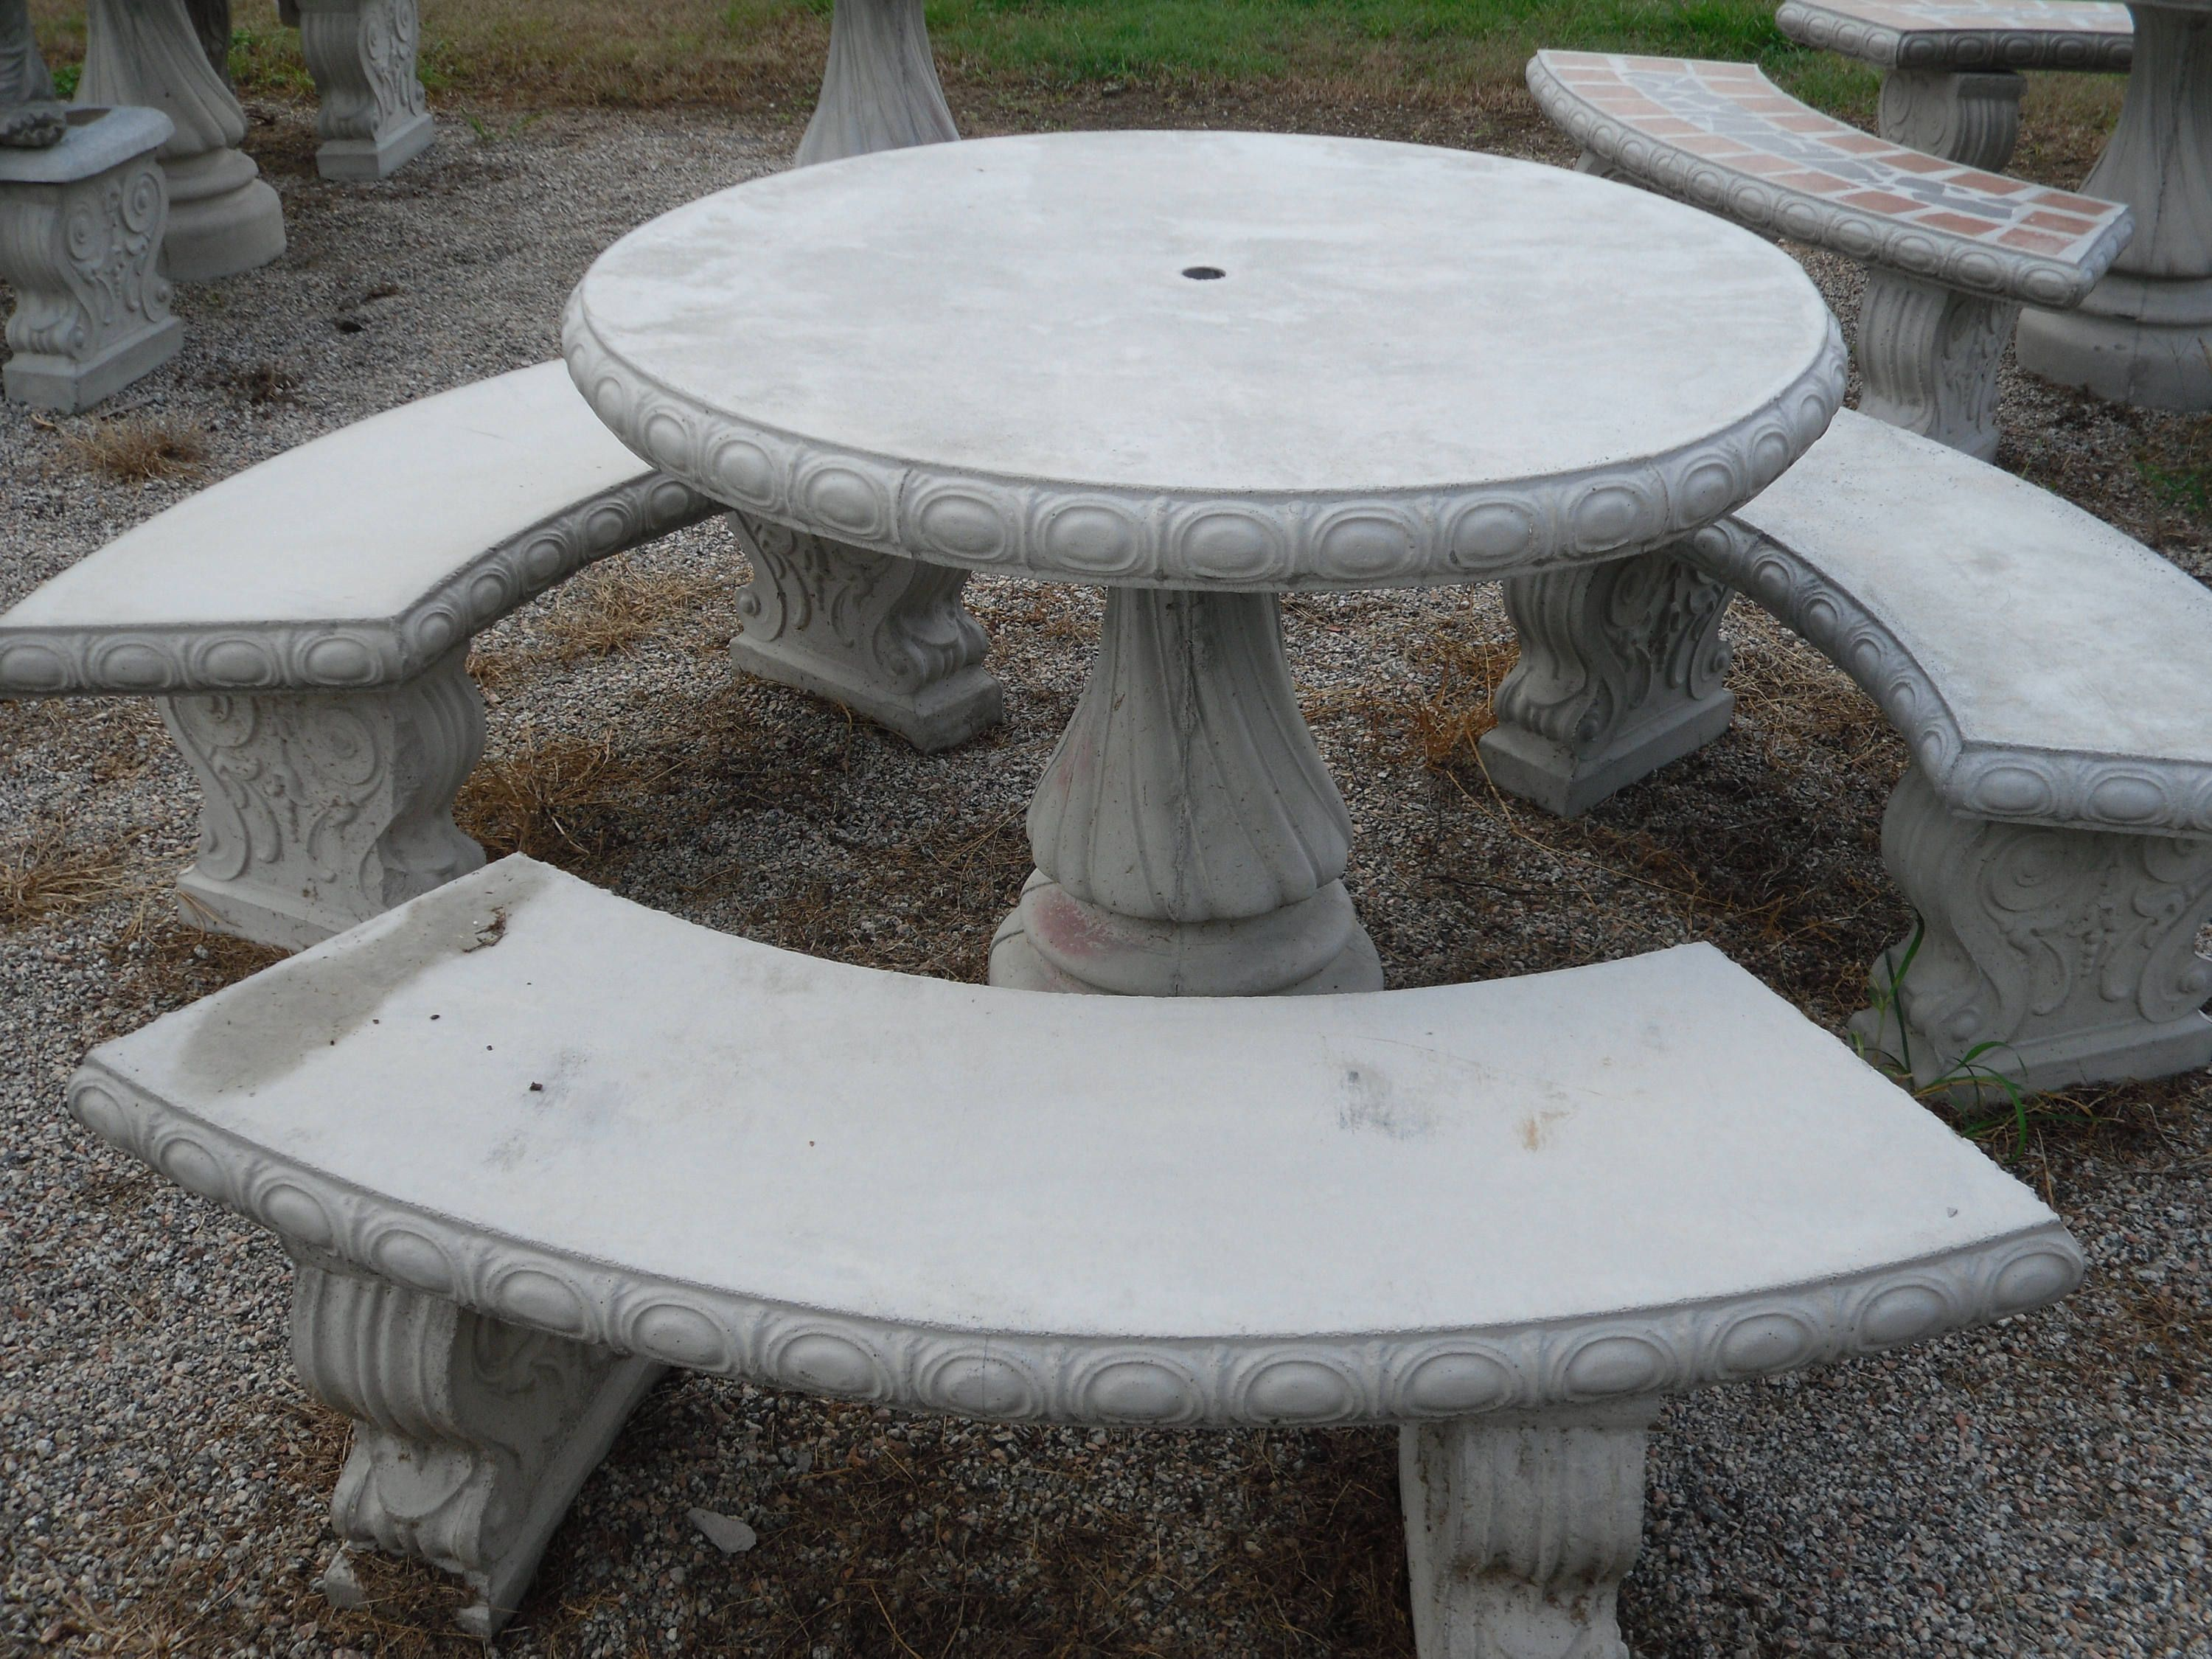 Outdoor Table Set Patio Set Cement Patio Table Set Outdoor Etsy In 2021 Concrete Outdoor Table Concrete Table Patio Table Set Concrete patio table and bench